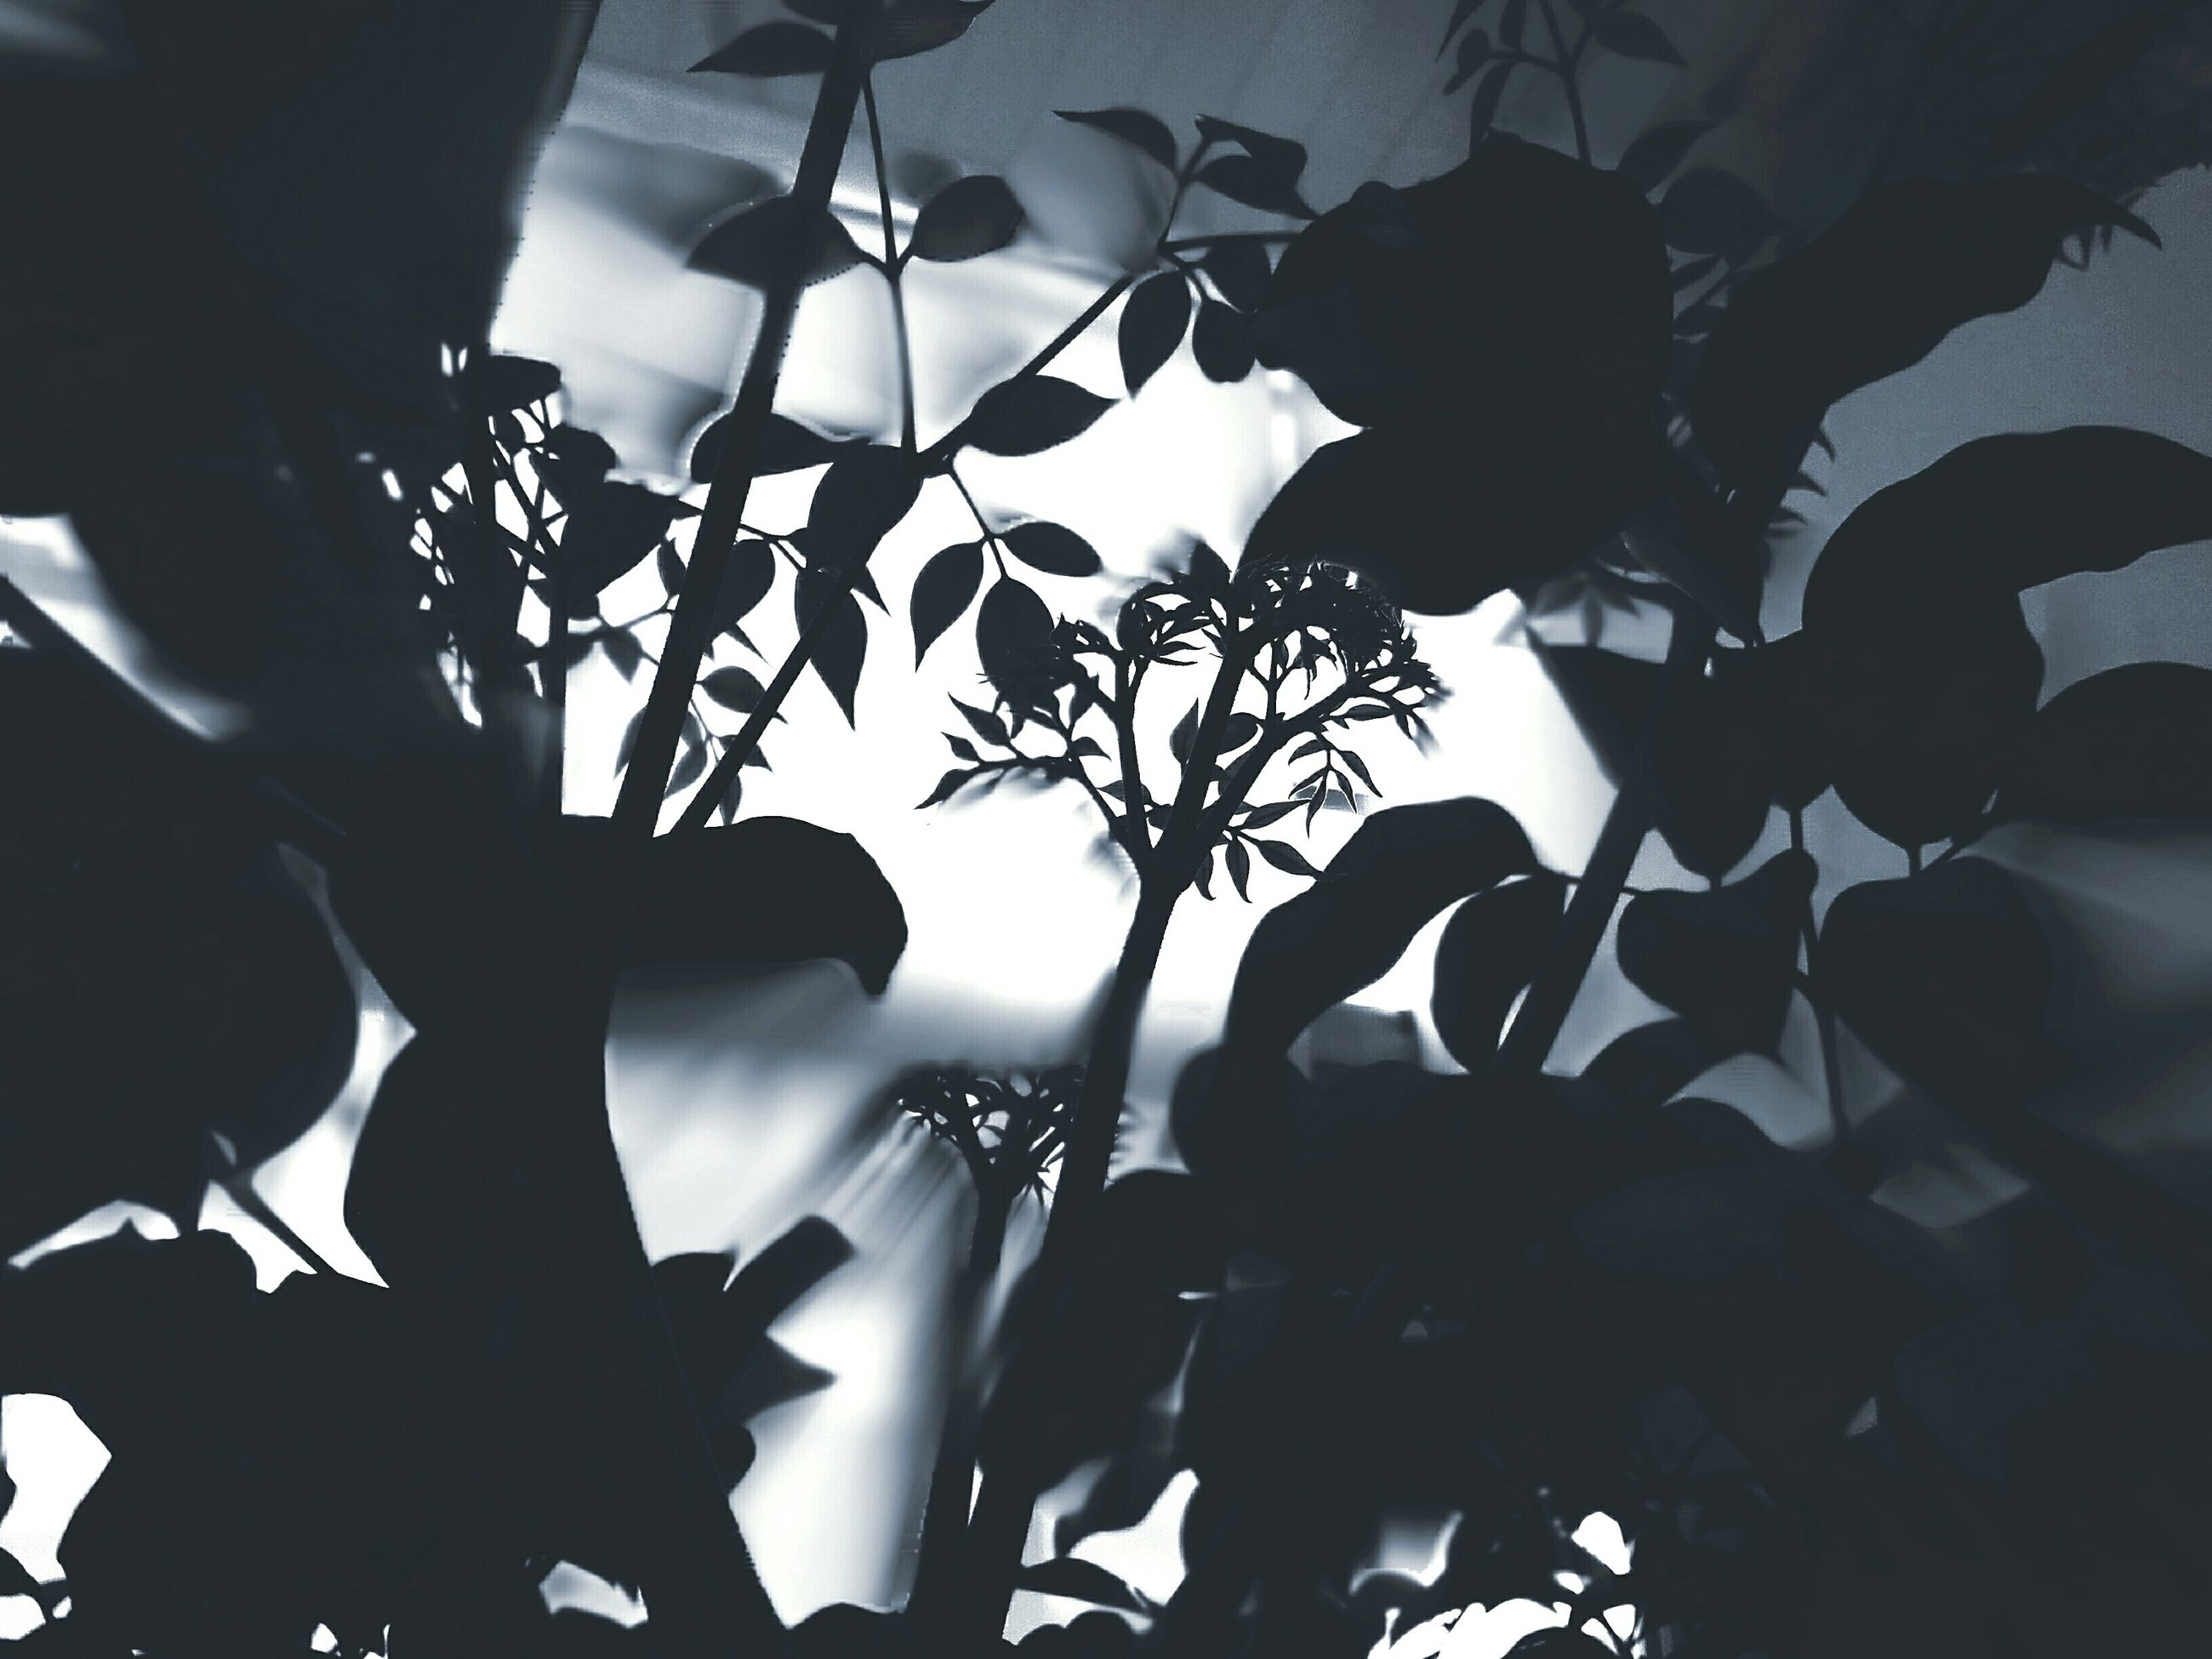 low angle view, indoors, lighting equipment, silhouette, illuminated, leaf, tree, growth, ceiling, sunlight, hanging, branch, no people, window, home interior, plant, nature, day, close-up, decoration